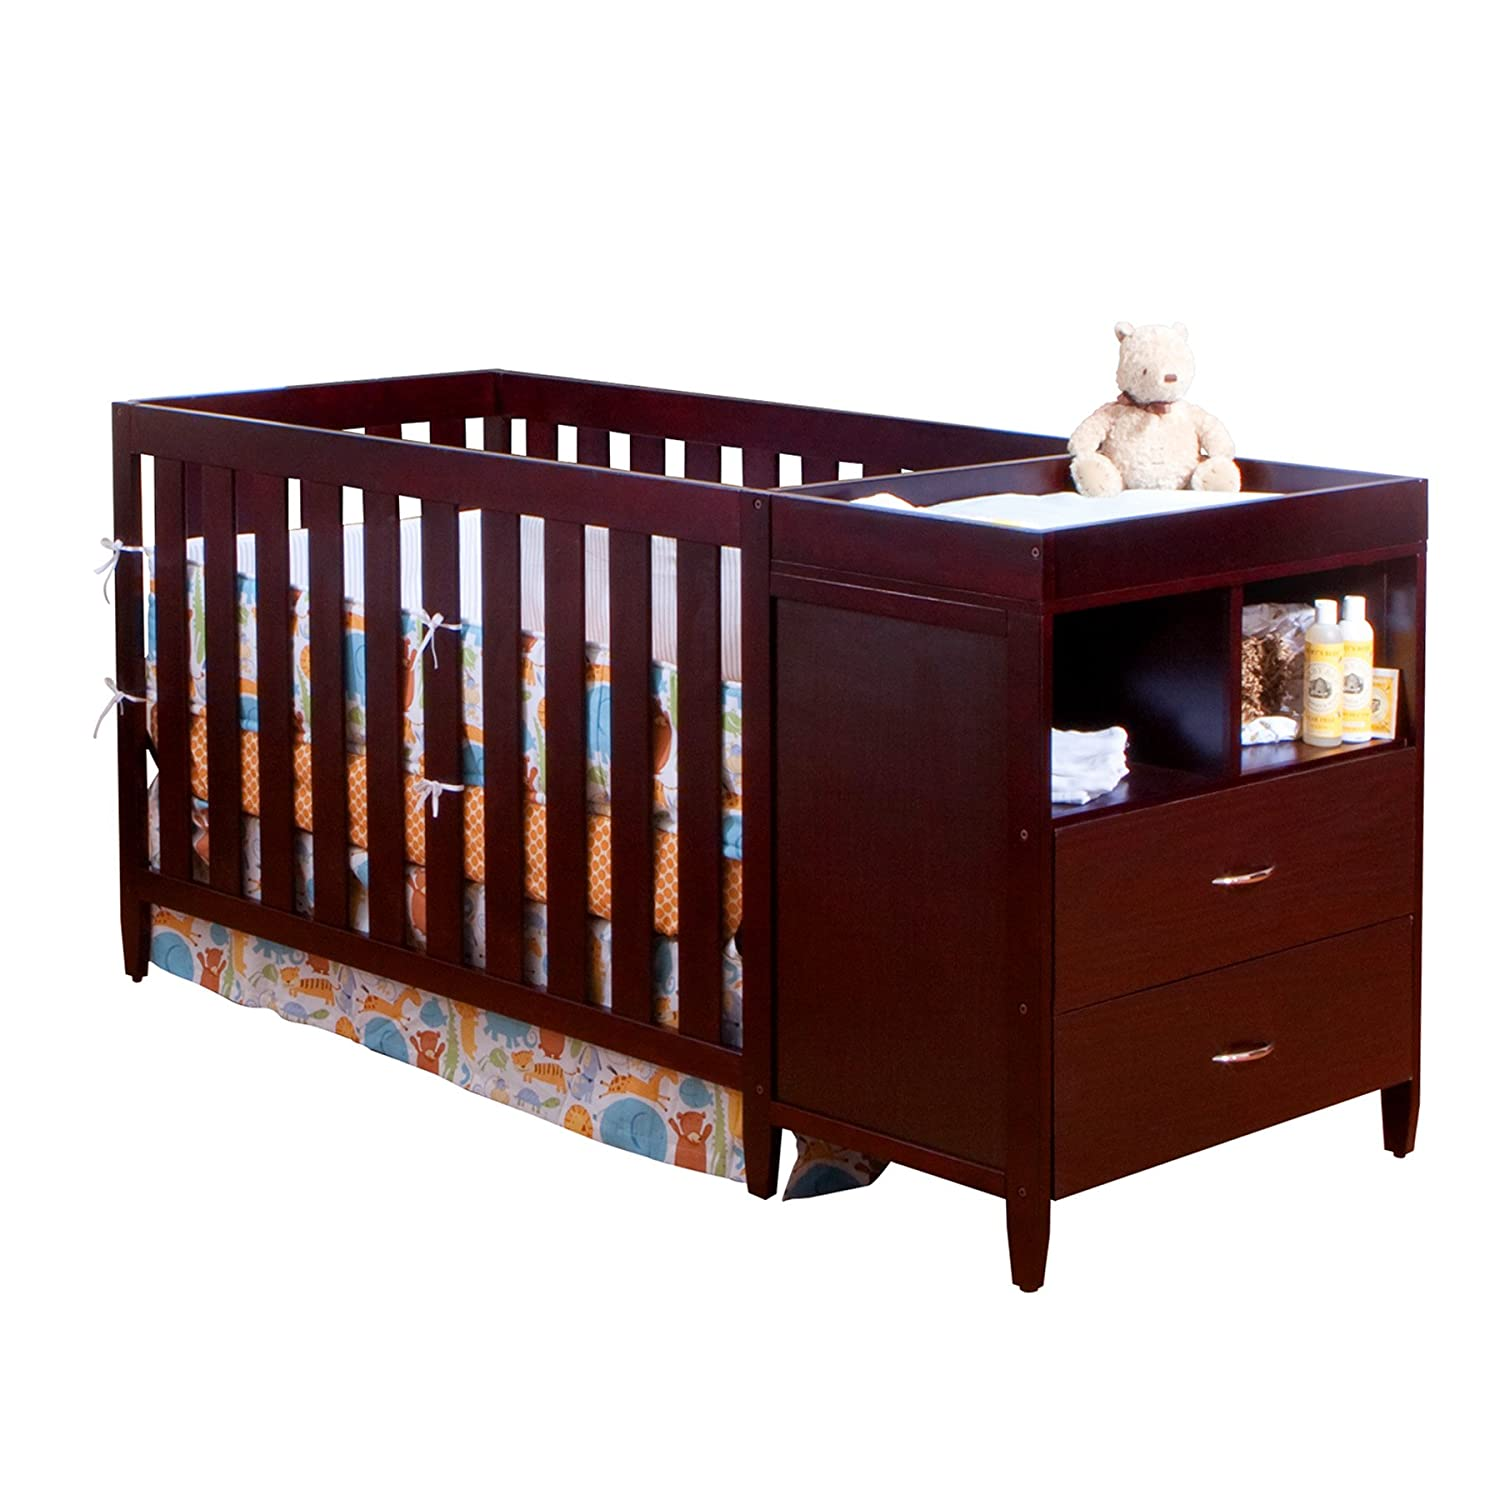 a table with full rugged little the cheap is pretty bed inspirational dresser changer and multipurpose baby size of crib cribs perfect plus convertible toddler ideas changing constructed fosterboyspizza